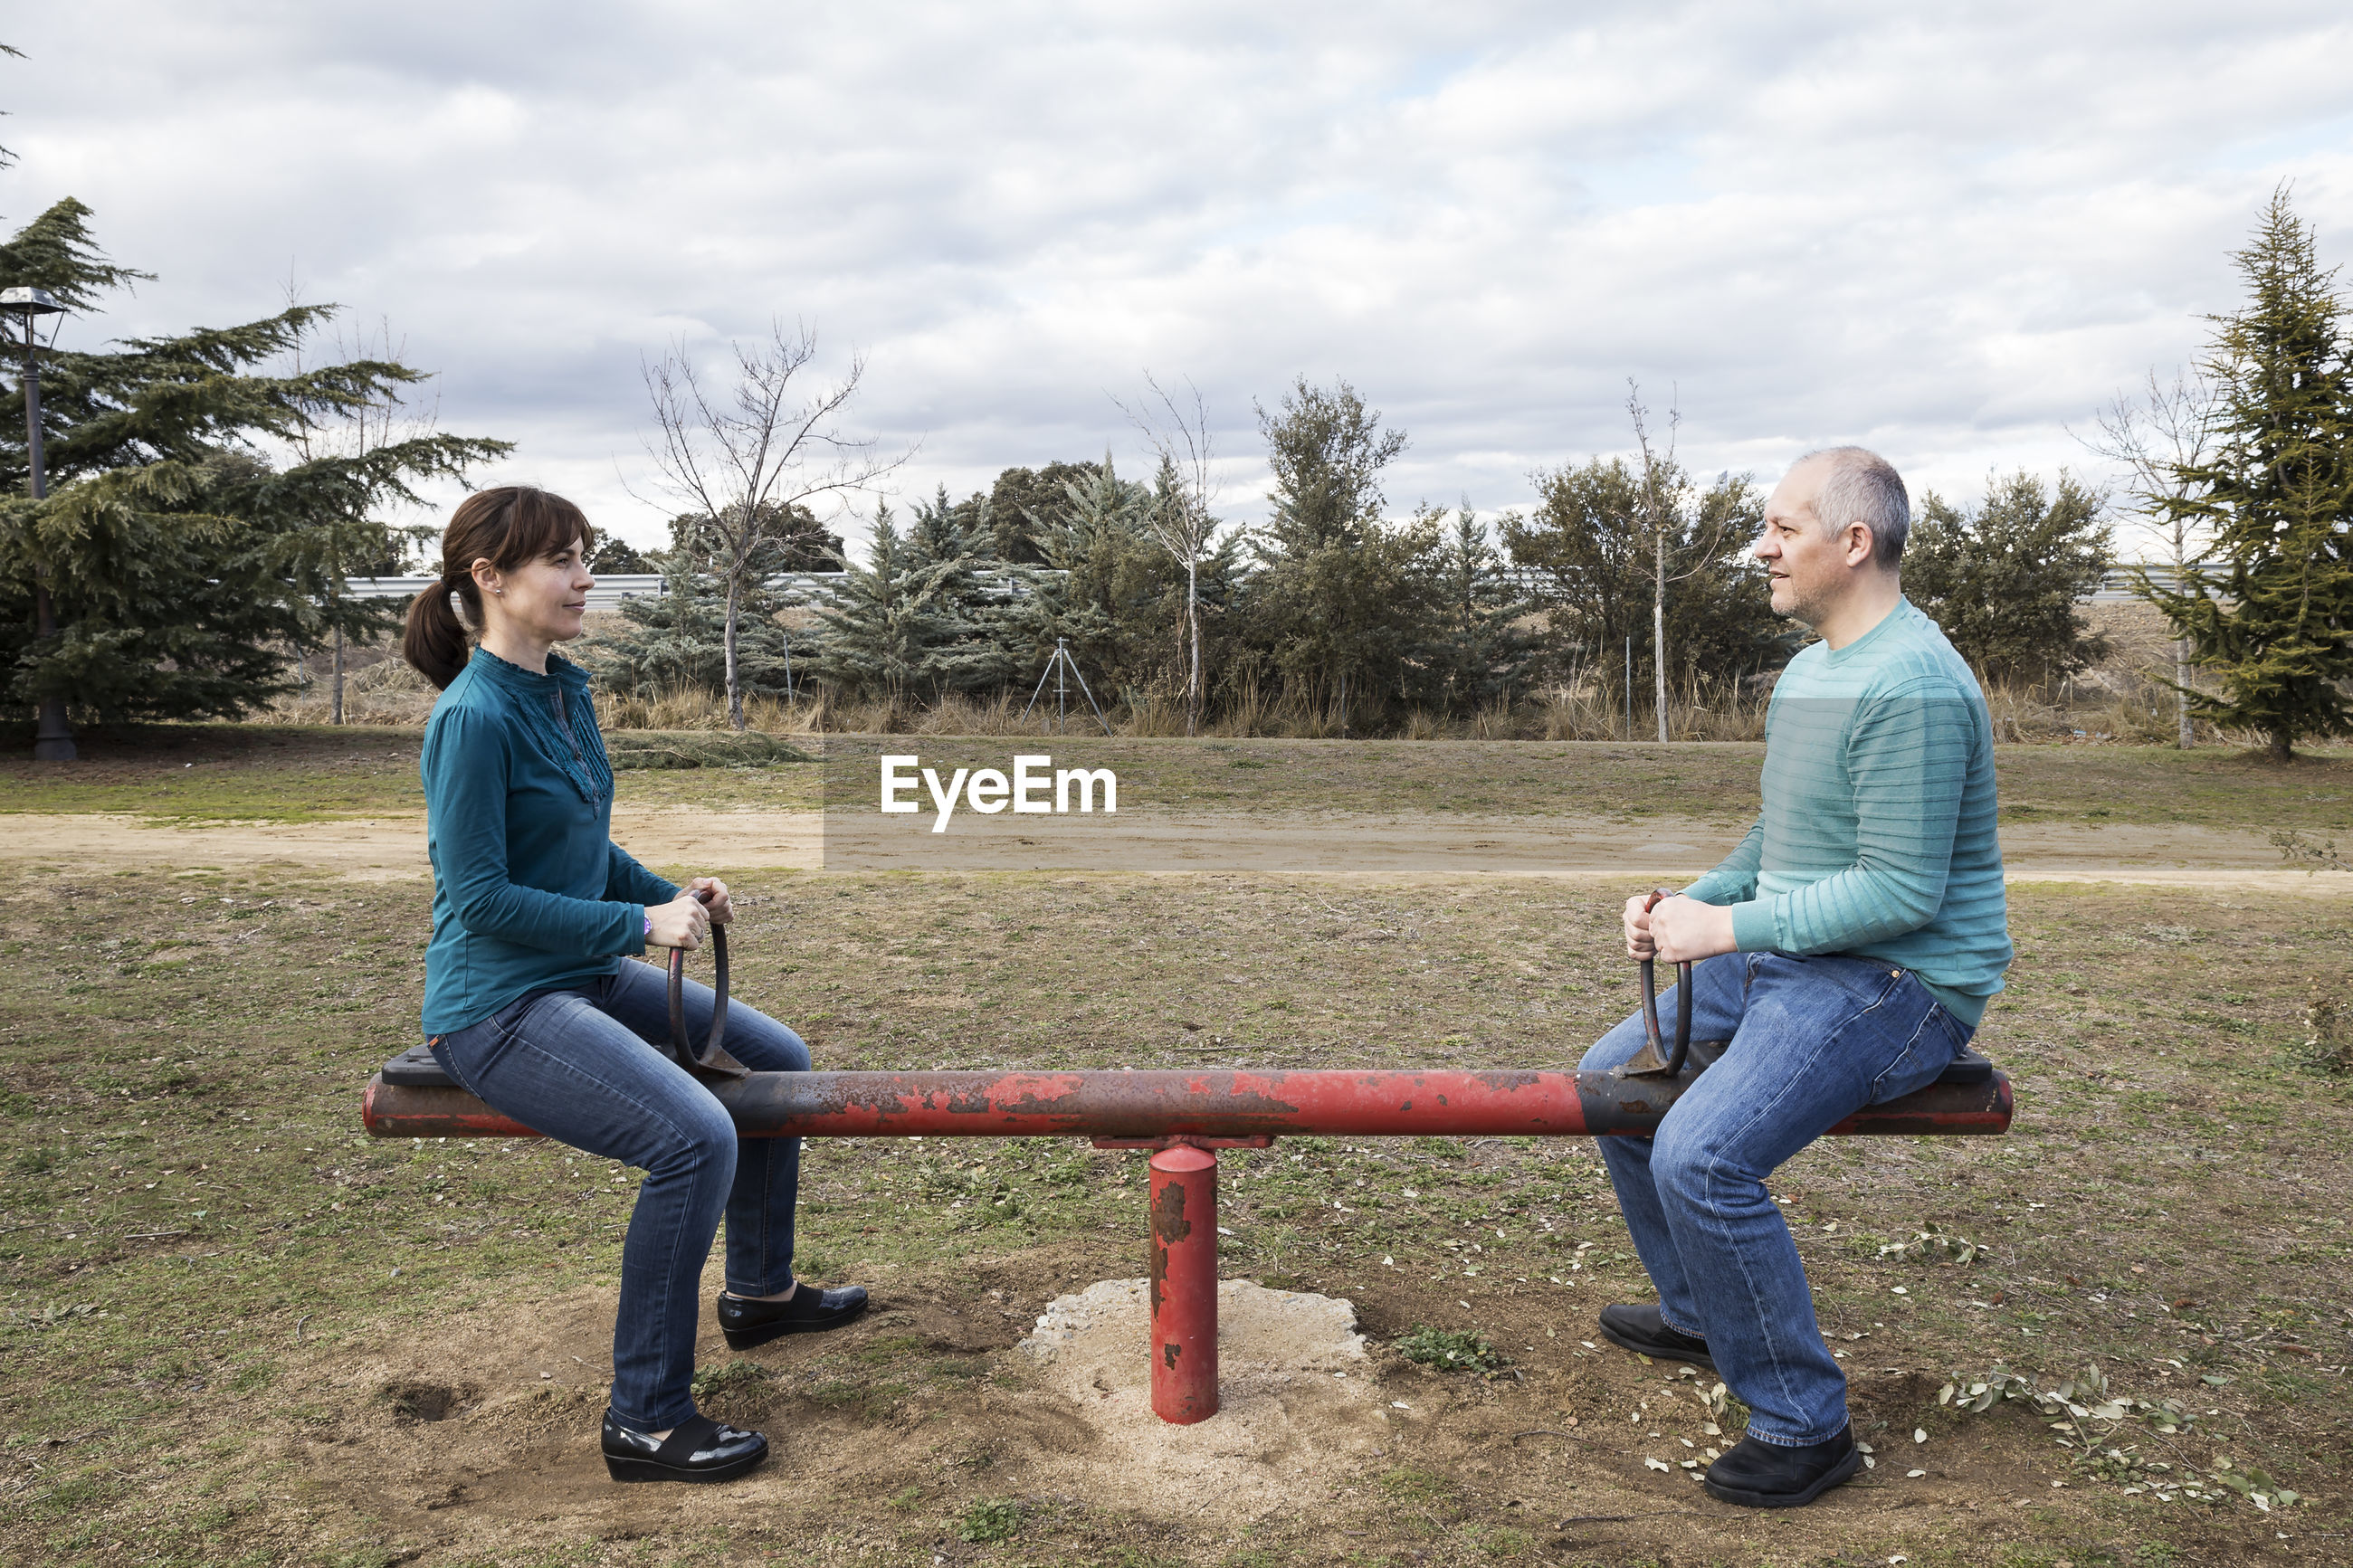 Woman and man mounted on a seesaw maintaining equality